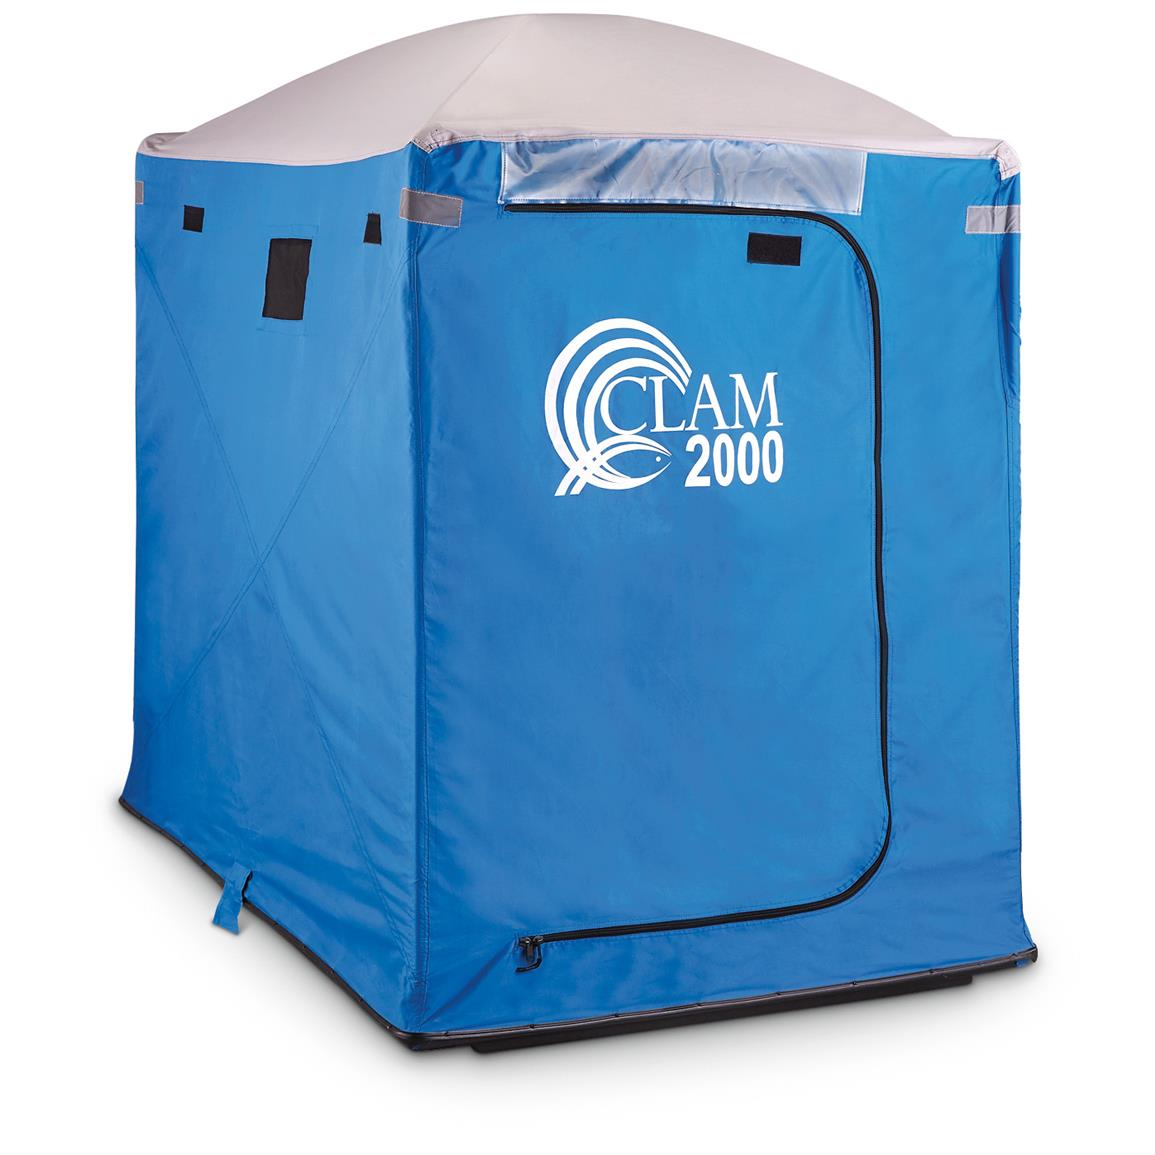 Clam 2000 Cabin 2-man Icefishing Shelter